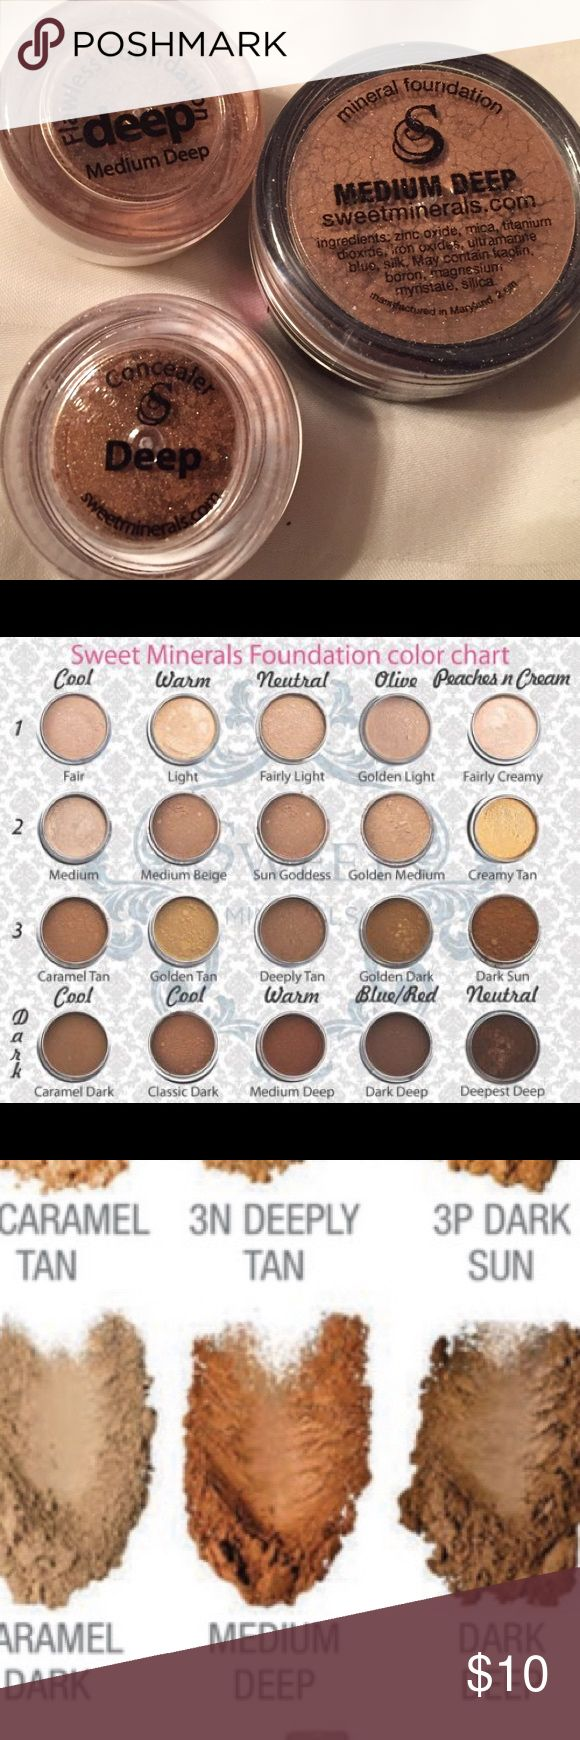 Flawless foundation! Dark complexion, neutral tone Flawless foundation!! All natural, not cakey! No fillers like bismuth, talc, and also paraben-free. Cruelty free. Better than Bare Minerals (4 hour wear) and this lasts up 18 hours (or longer)! I've been using this brand for 3 years and I will never switch to anything else. It's never cakey and because there's no bismuth or talc, it's never itchy and it feels light as air. This has the best coverage you'll ever see without feeling heavy…